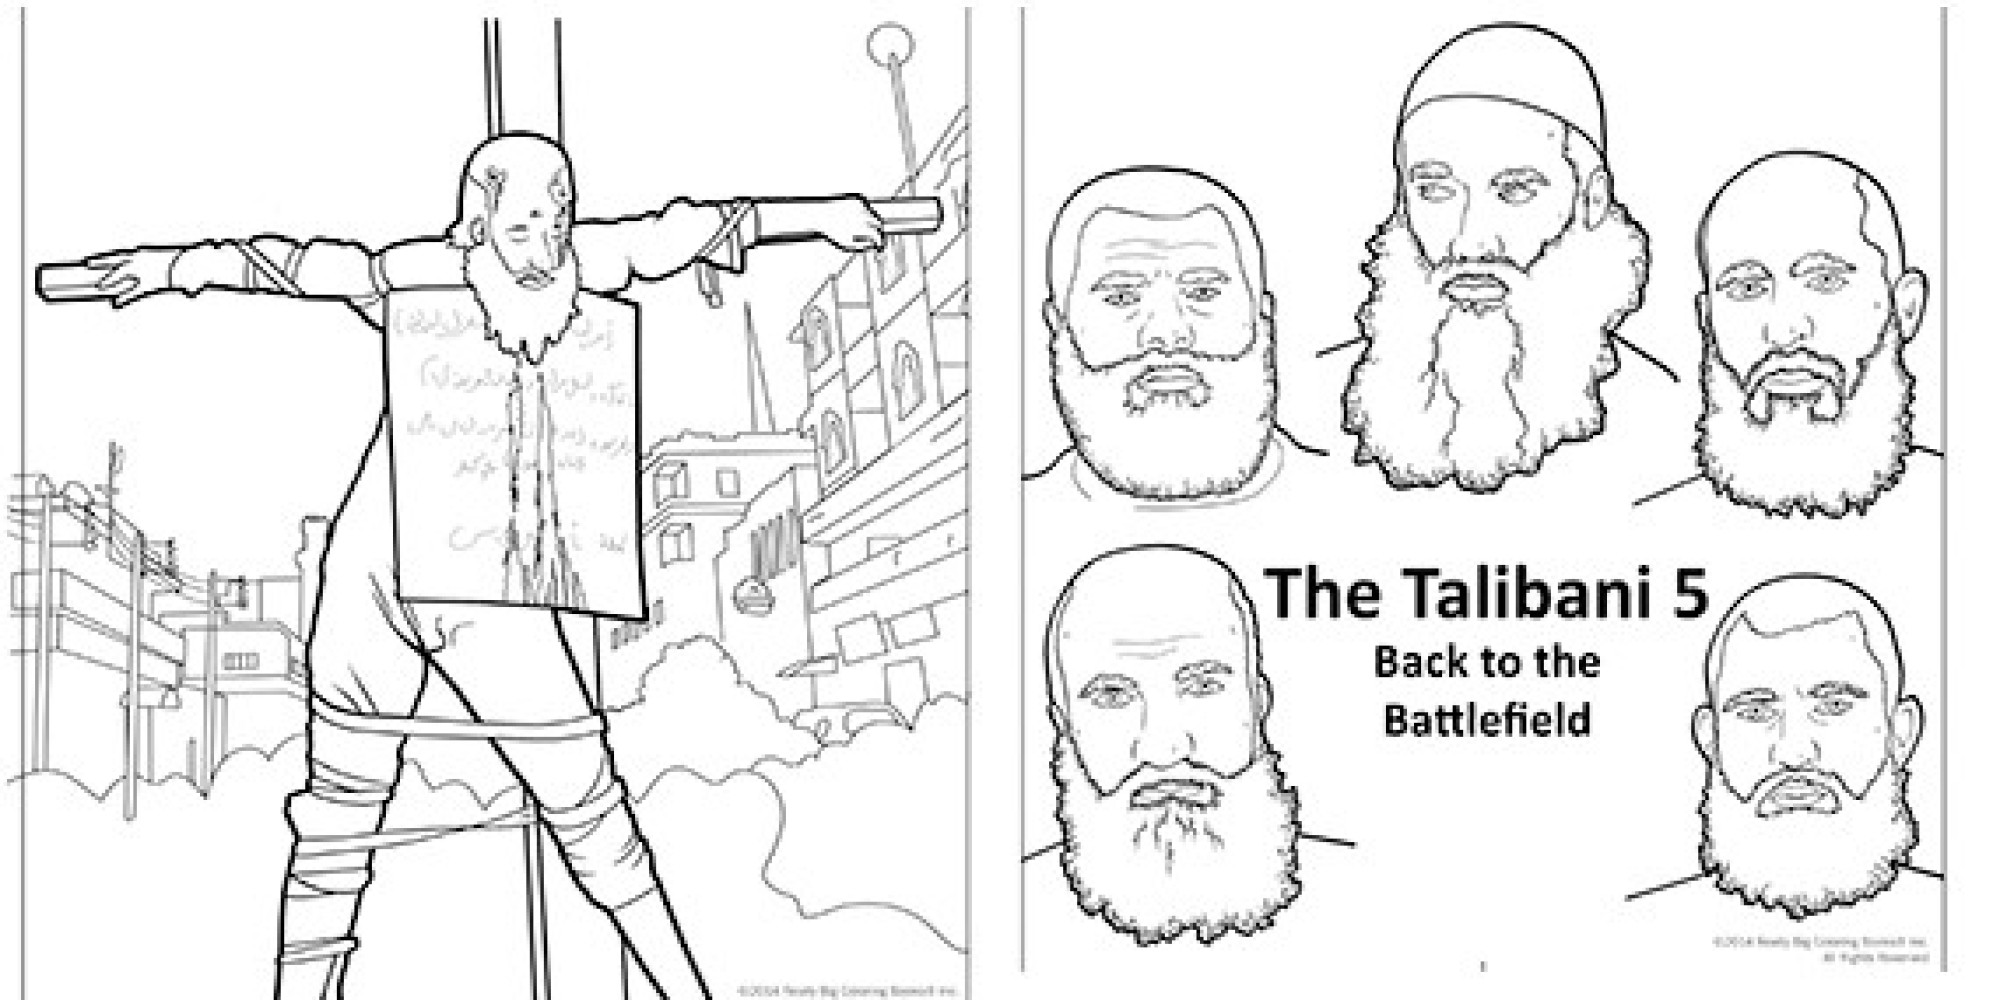 Graphic Anti-Terrorism Coloring Books Introduce Kids To